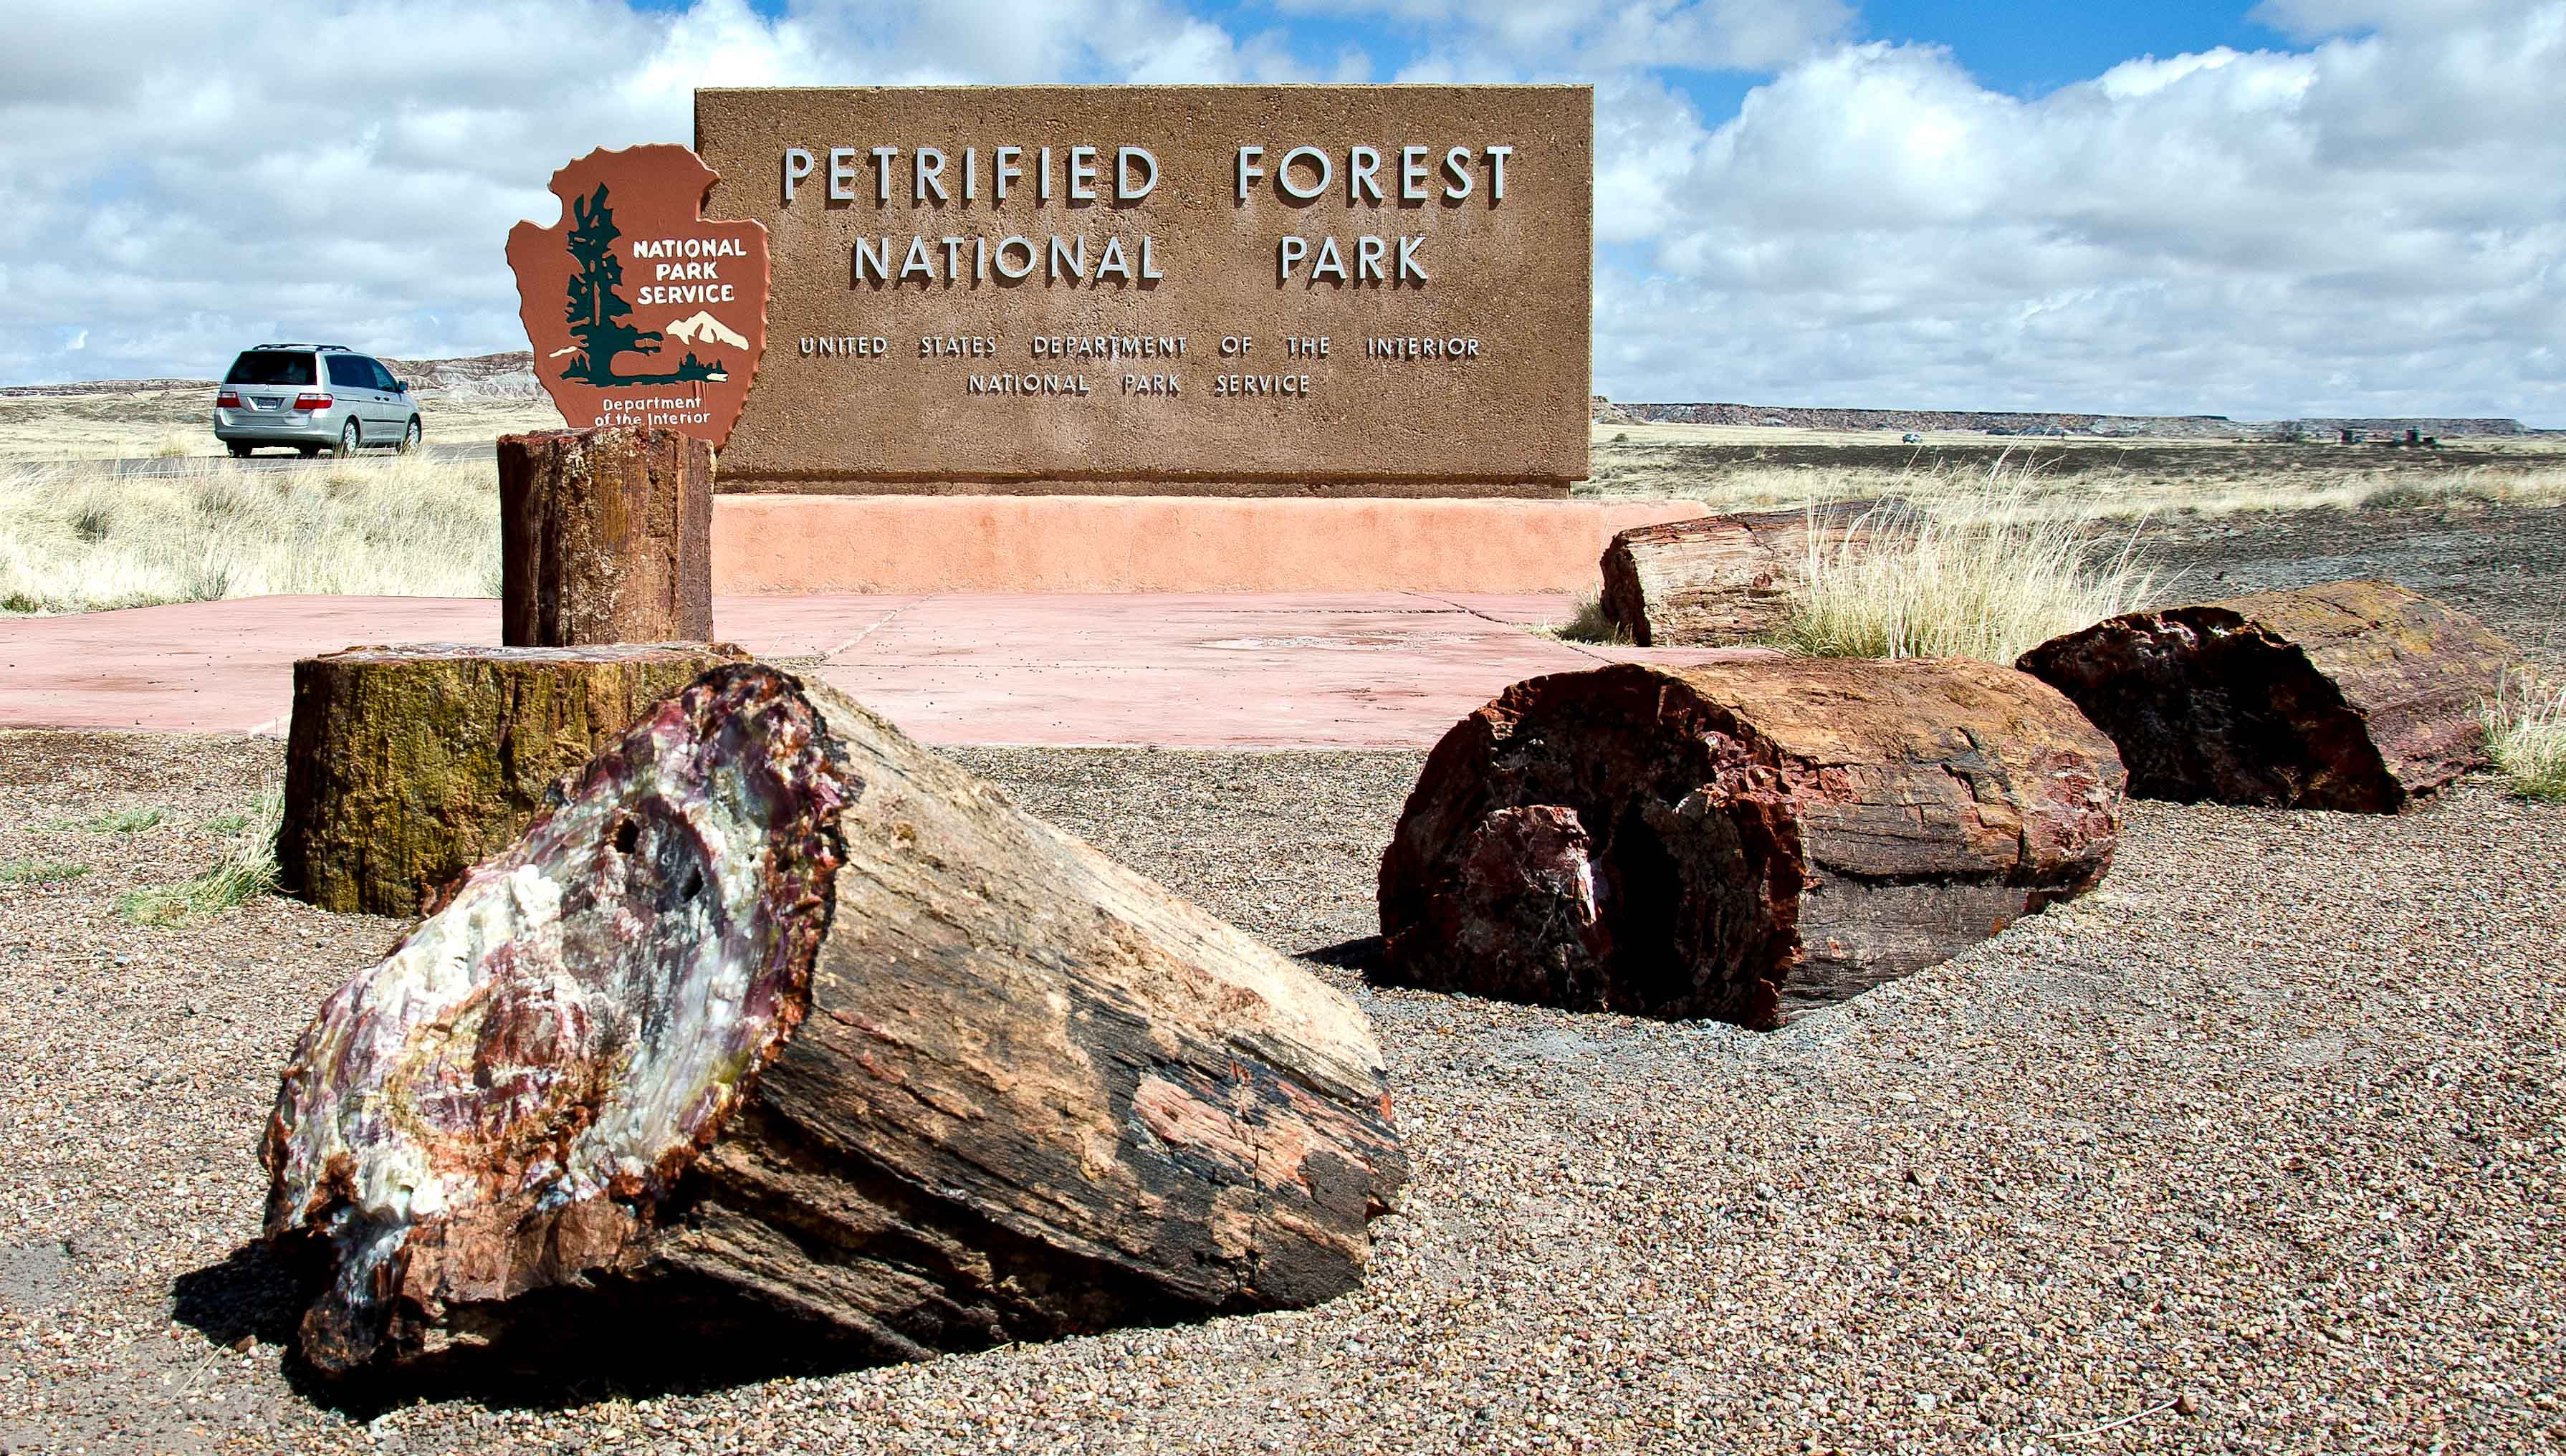 National parks petrified forest another header nevertheless sciox Choice Image